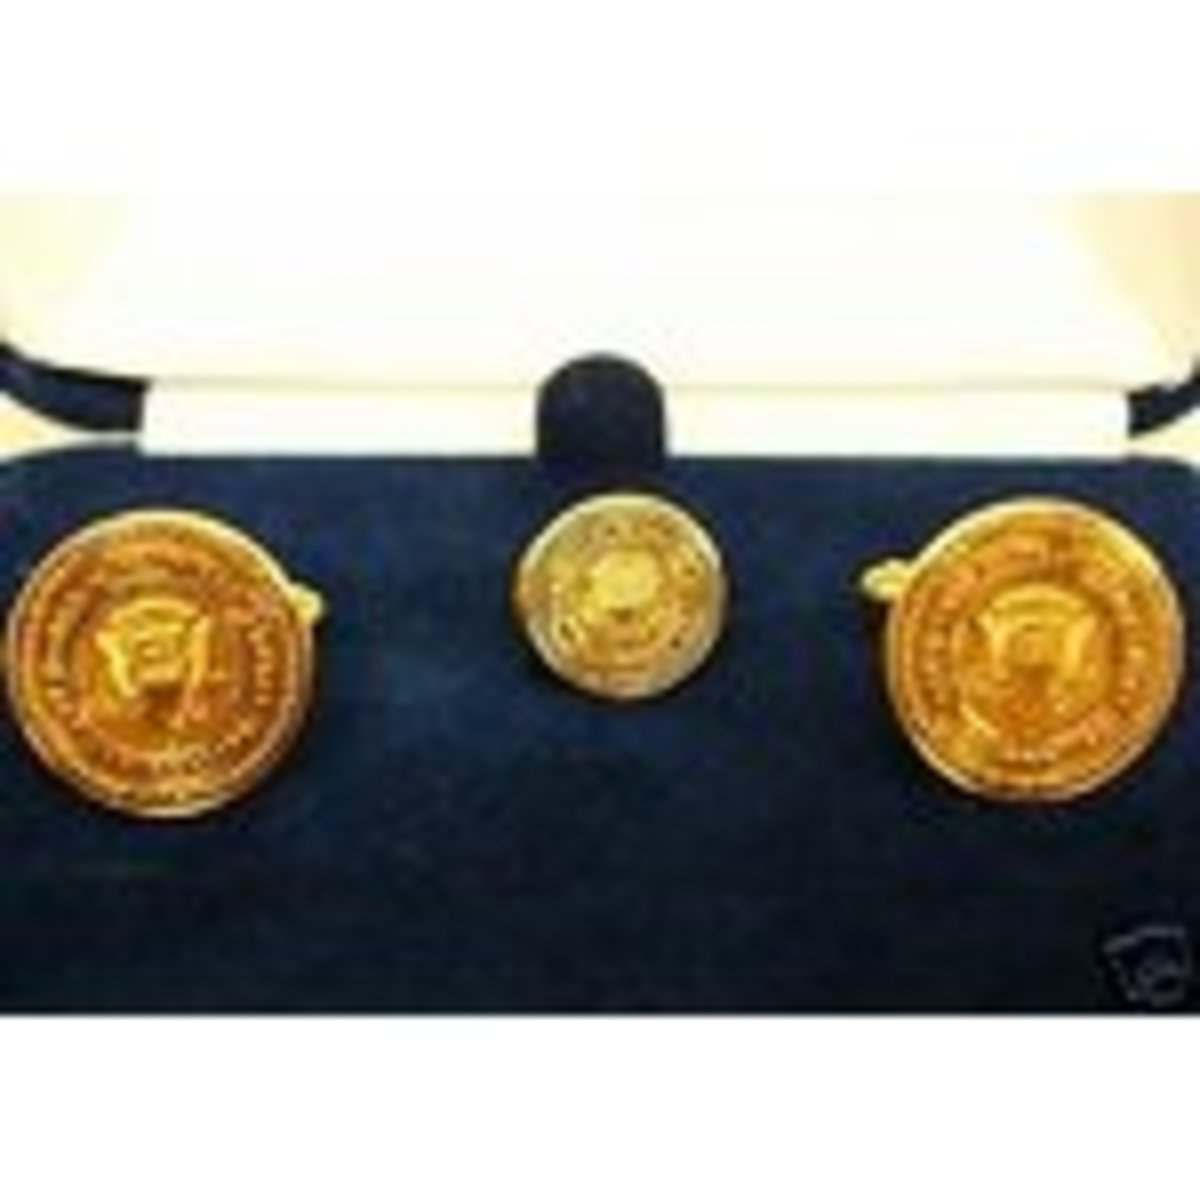 John F Kennedy Replica cuff link set in gold tone